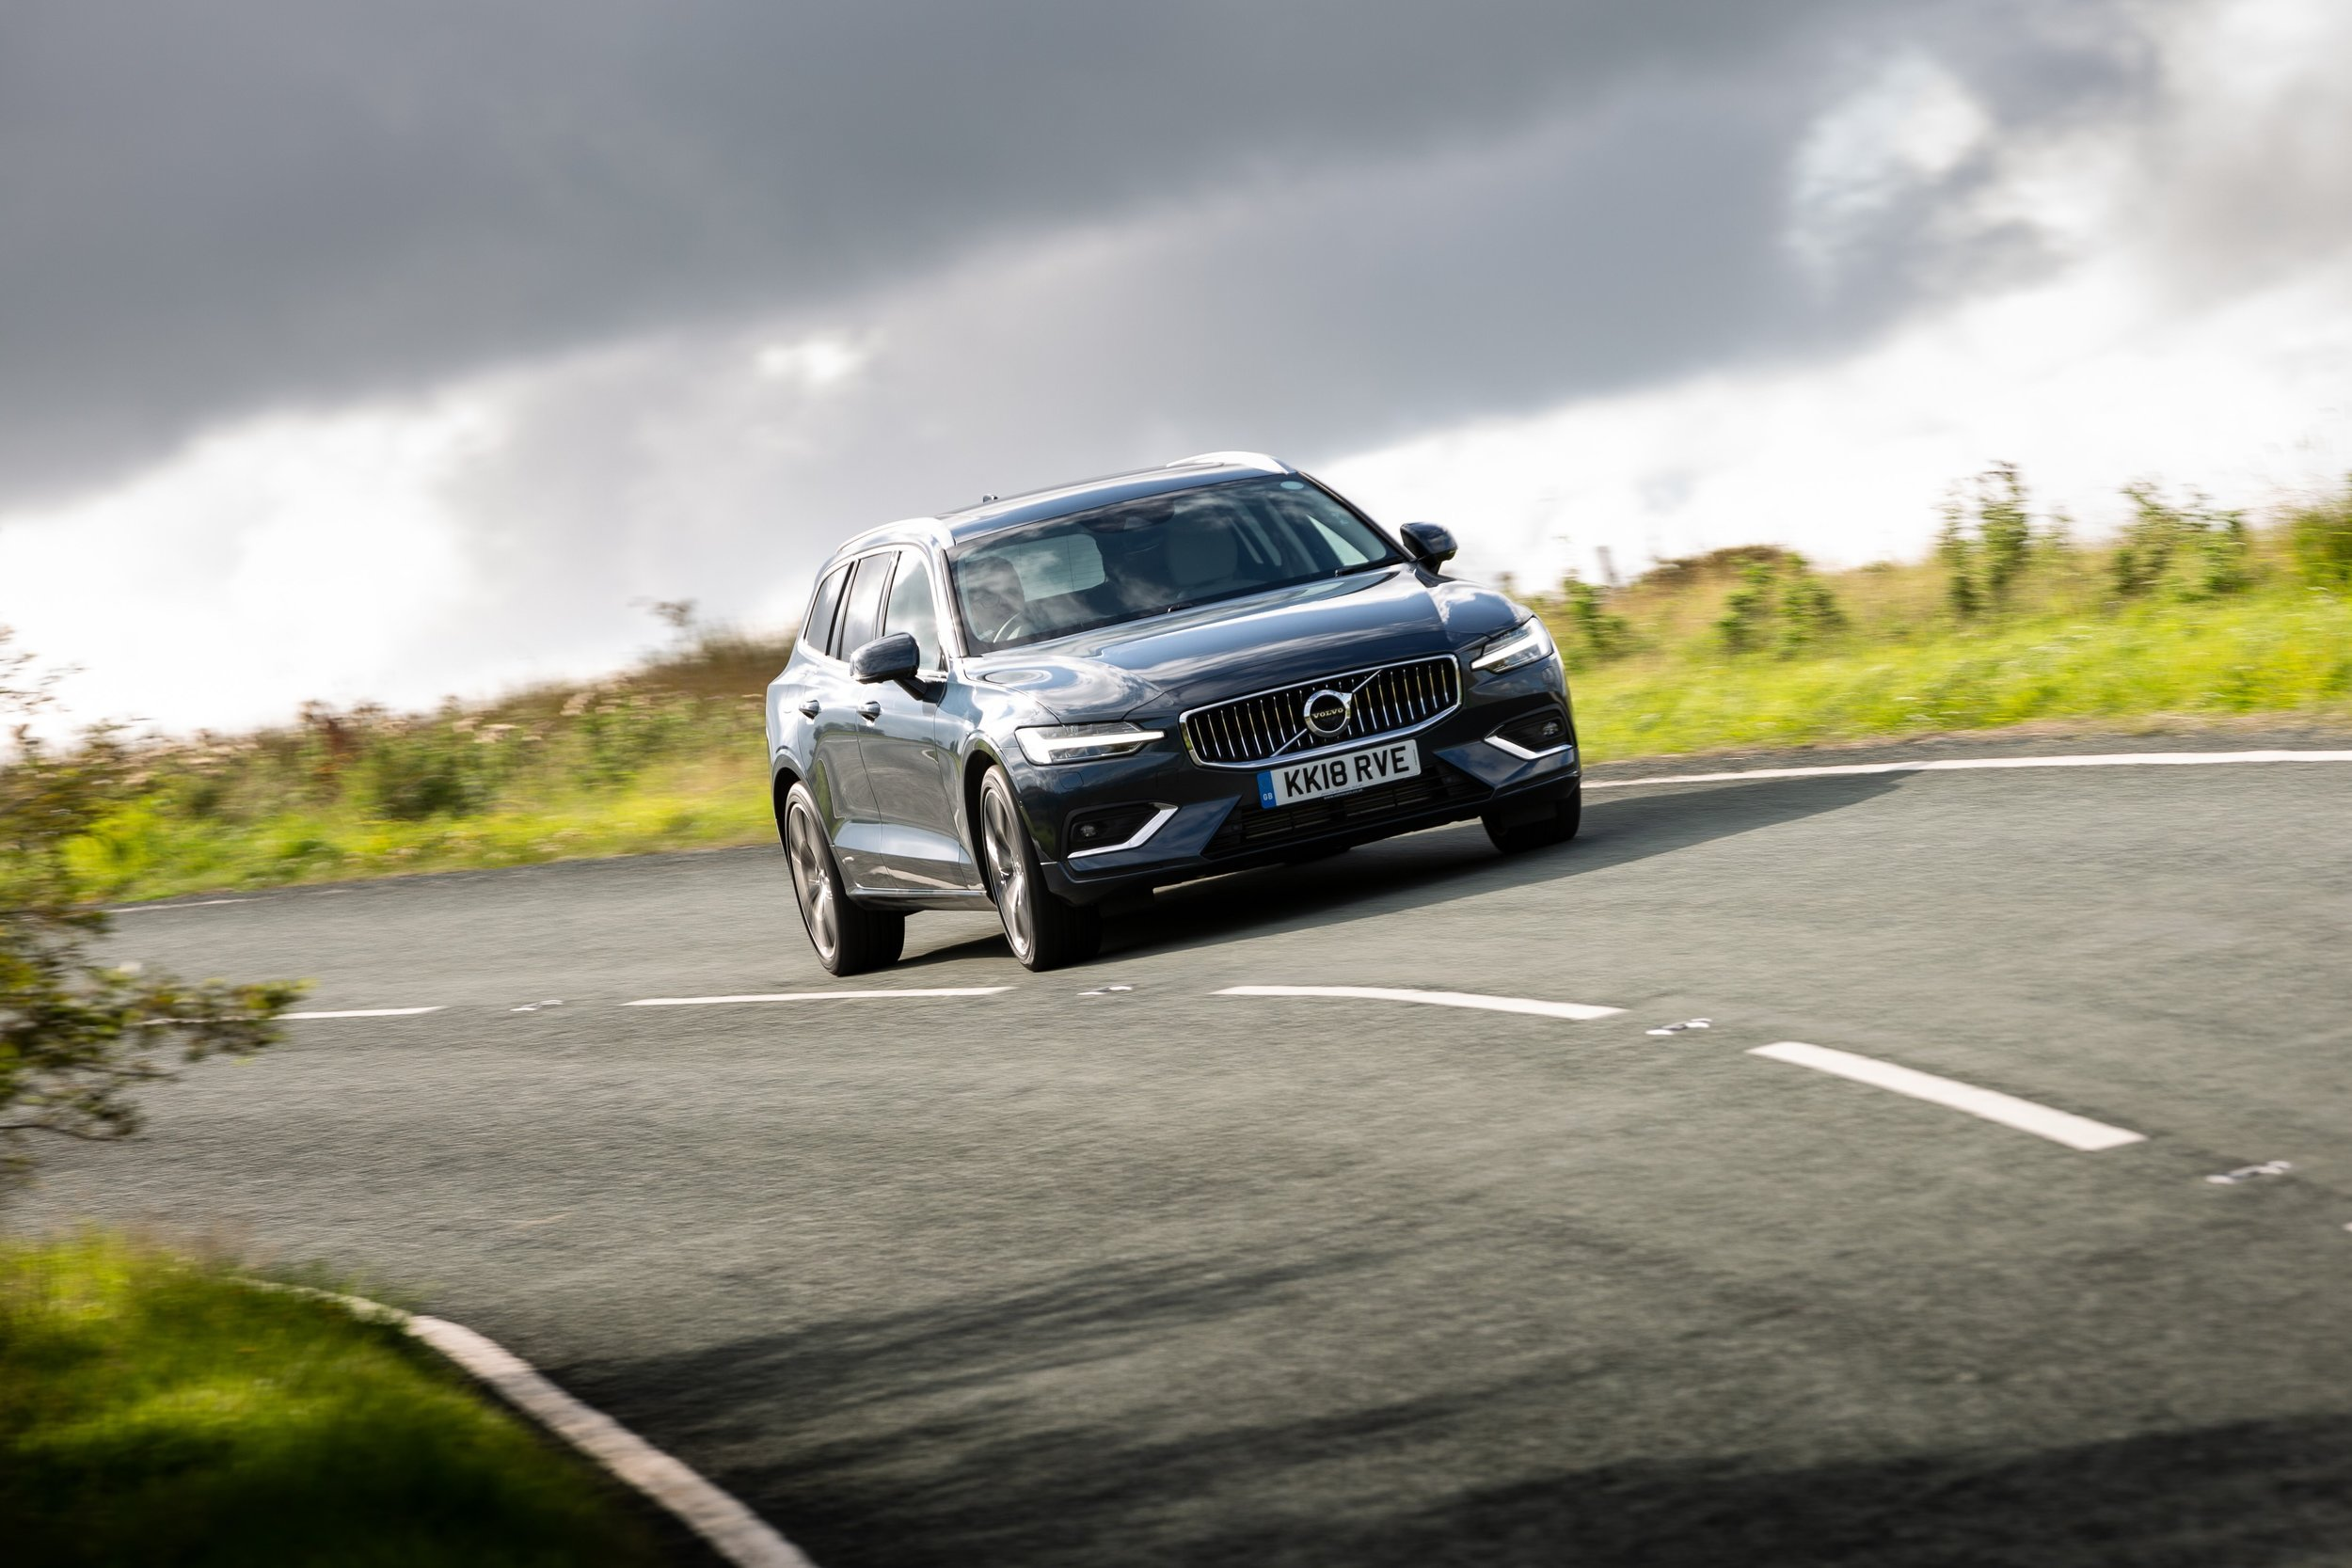 volvo-v60-regalmotion-regalautolease-12.jpg